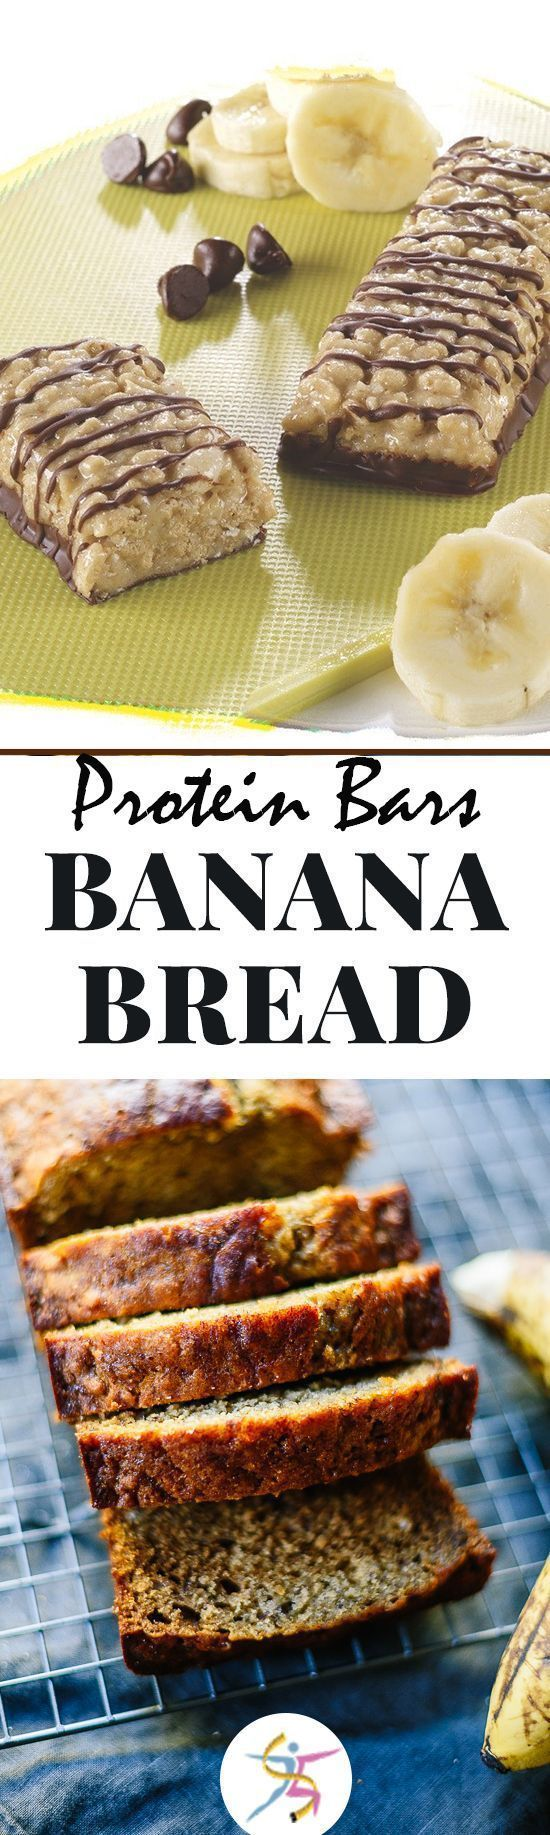 BariatricPal 15g Protein Bars - Banana BreadEach bar has 15 grams of protein, which can help you start your day on the right foot so you are less hungry throughout the morning. It has only 150 calories, so you can feel good knowing you are right on track with your meal plan. Eat it on its own, or pair it with blueberries or peanut butter for some more essential nutrients. Each box has 7 servings.150 calories15 grams protein5 grams fiber10 percent of the daily value for ironSuitable